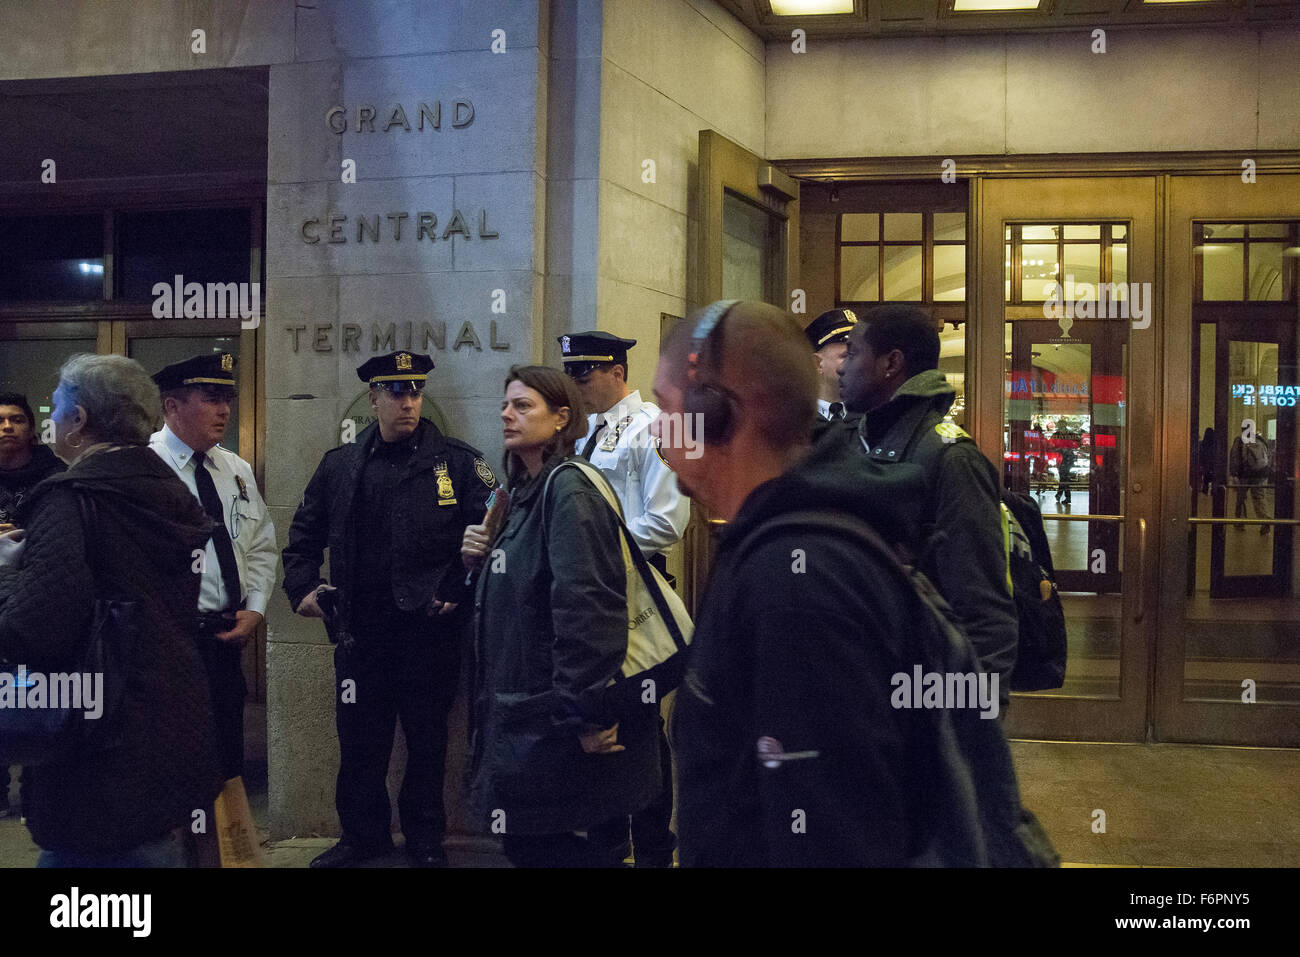 New York, United States. 18th Nov, 2015. A trio of NYPD officers stand near the entrance to Grand Central Terminal, - Stock Image